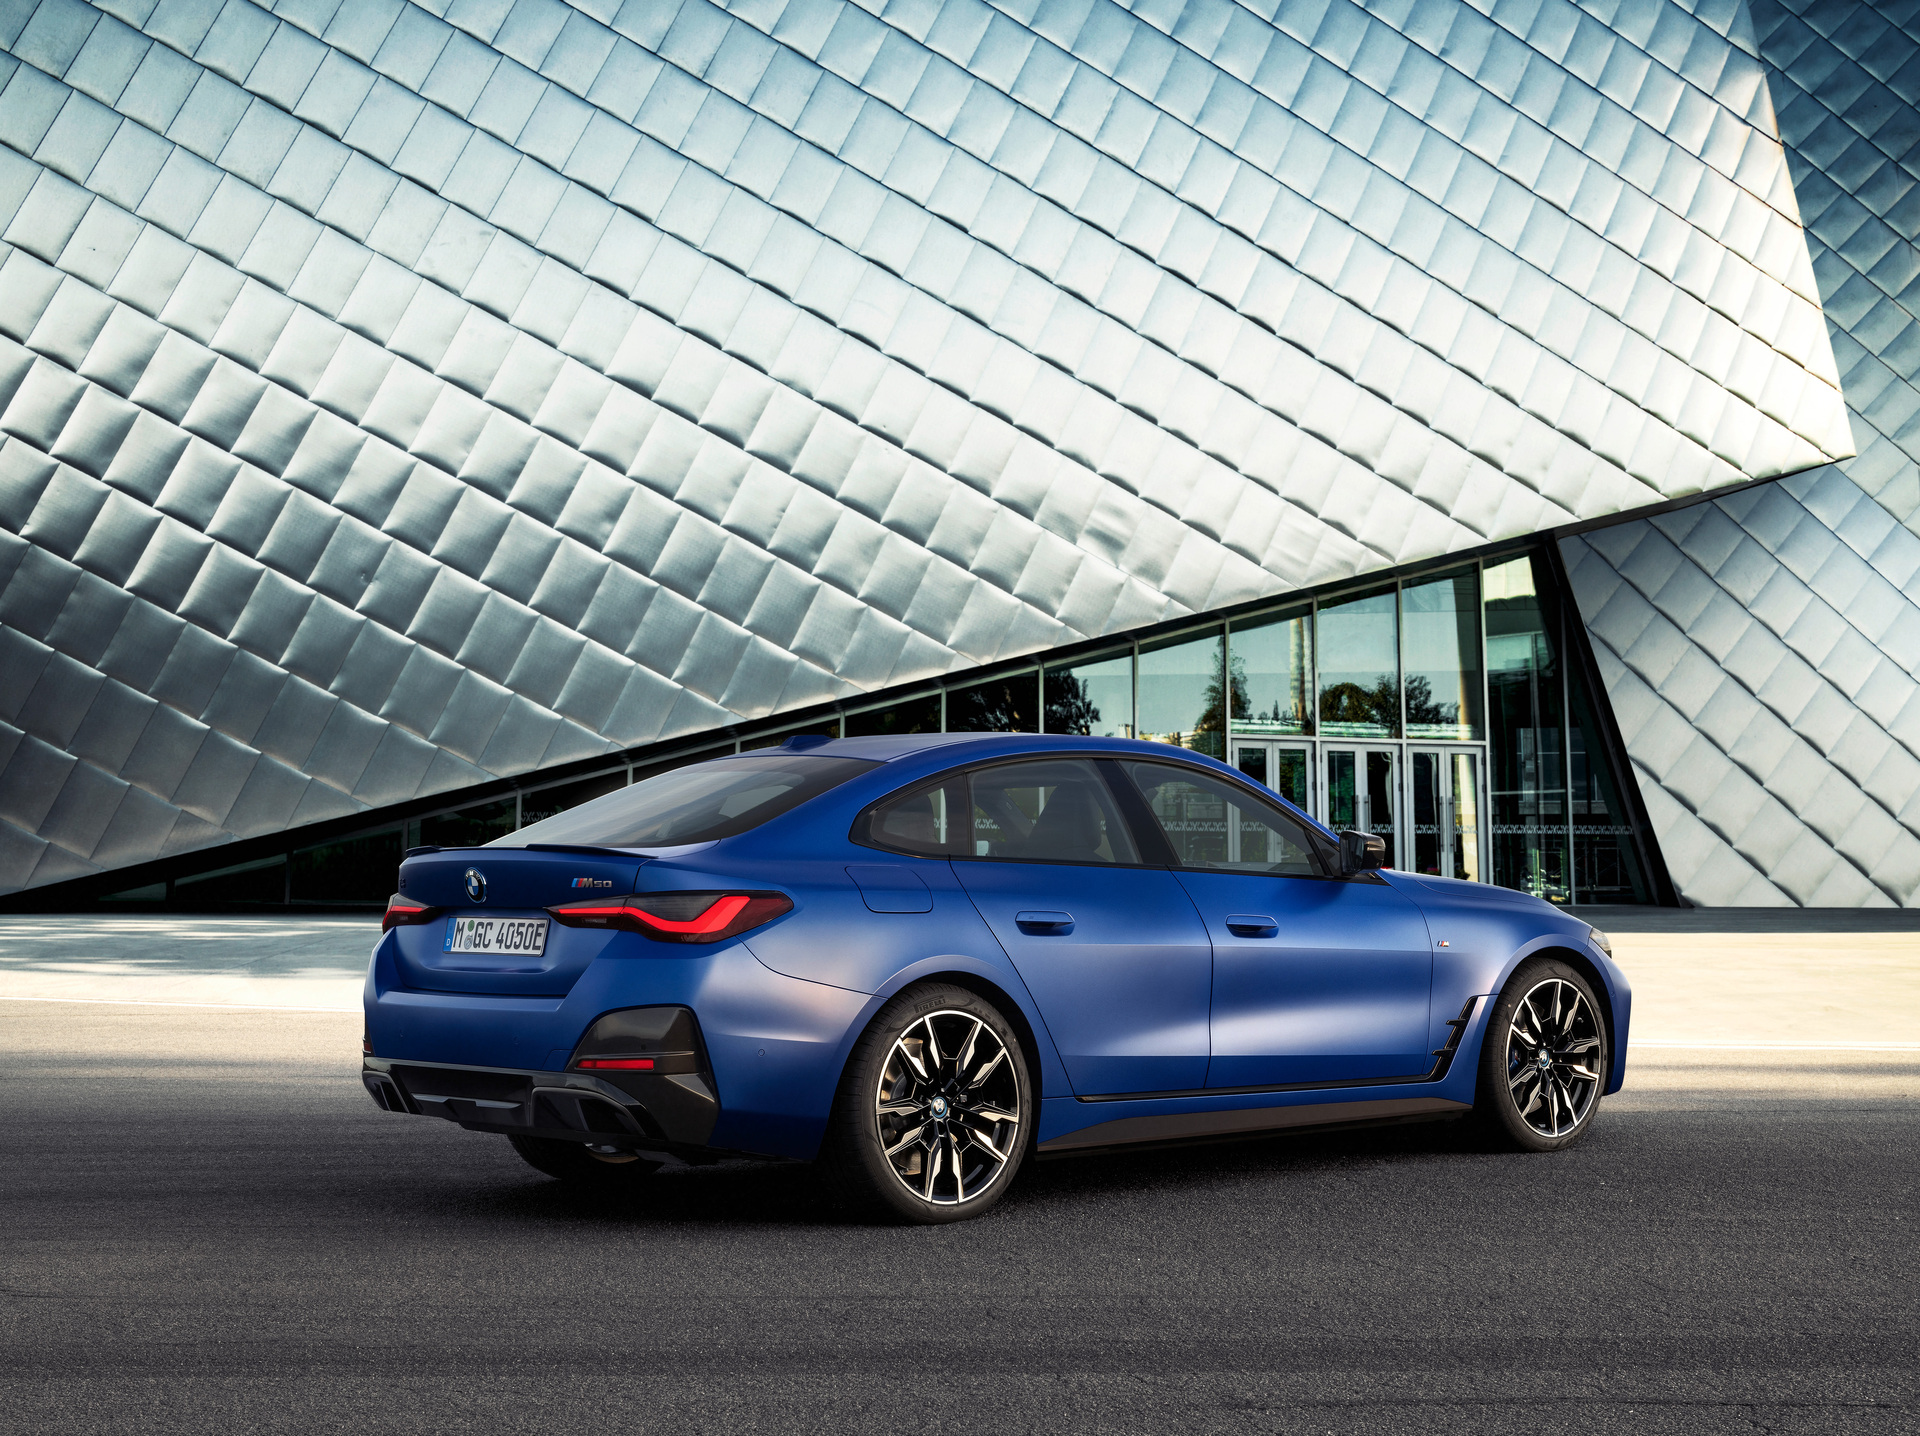 P90423621 Highres The Bmw I4m50 6 2021